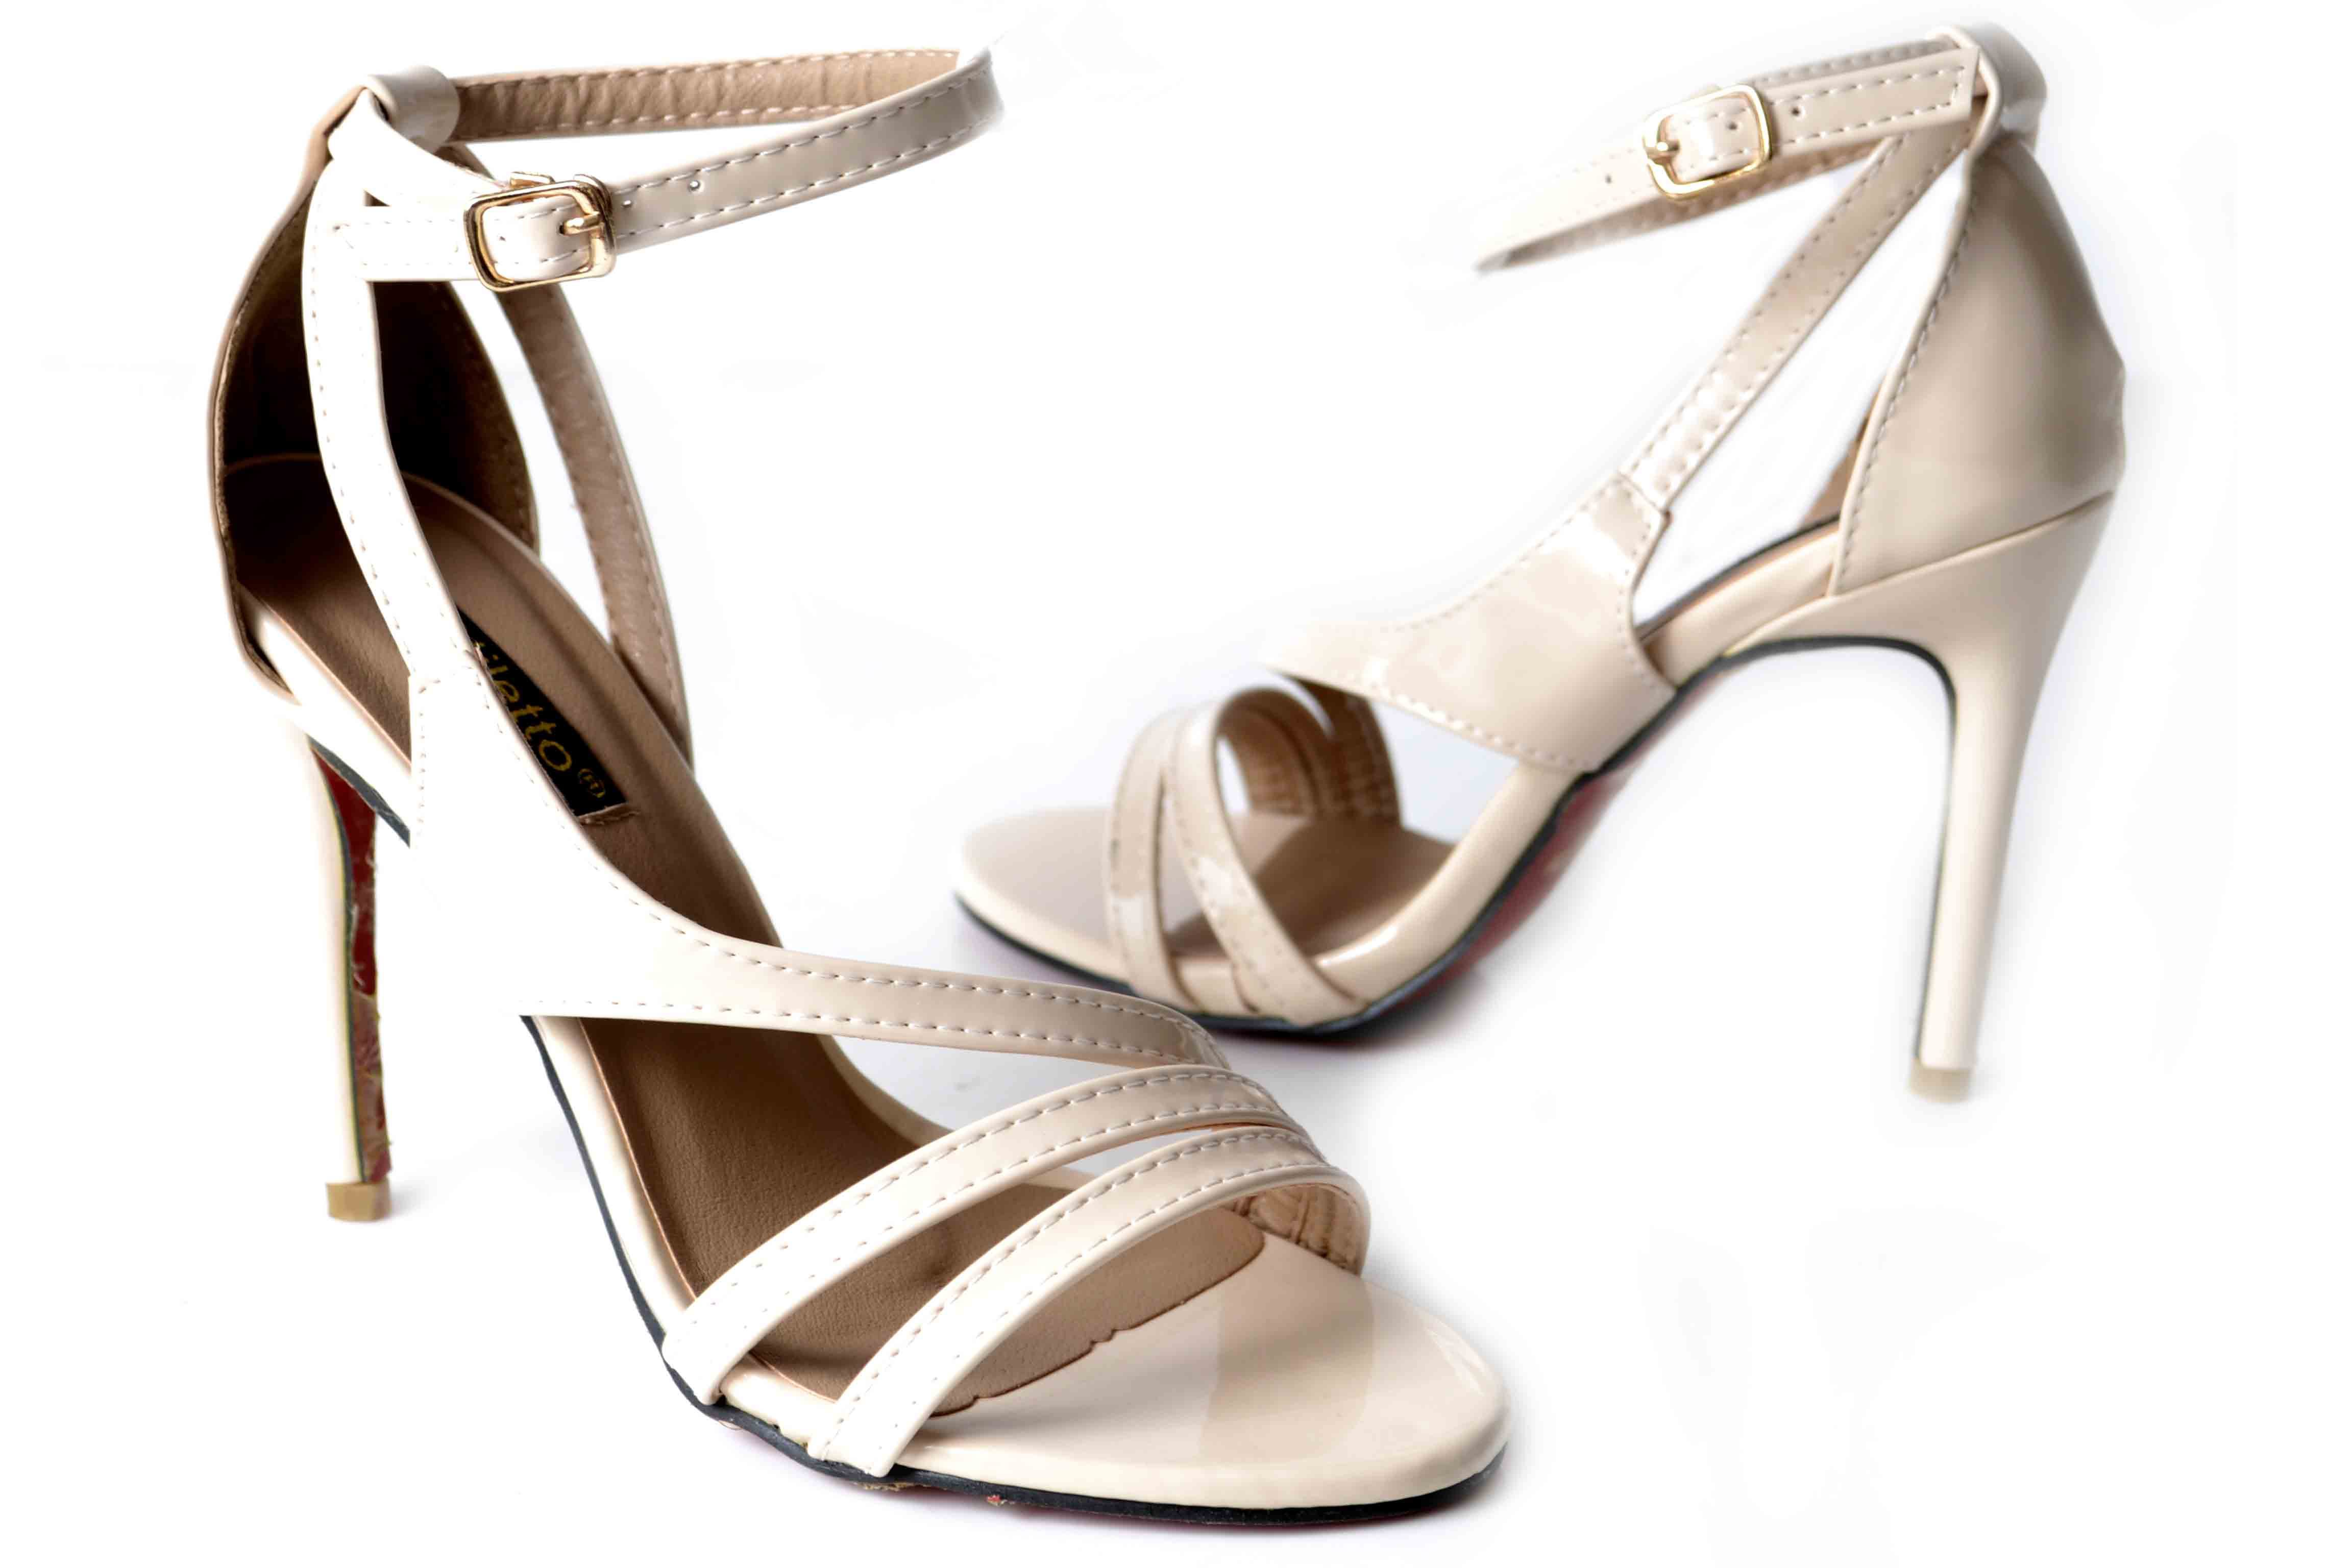 Metro-Shoes-Spring-Summer-Collection-2015-2016 (10)